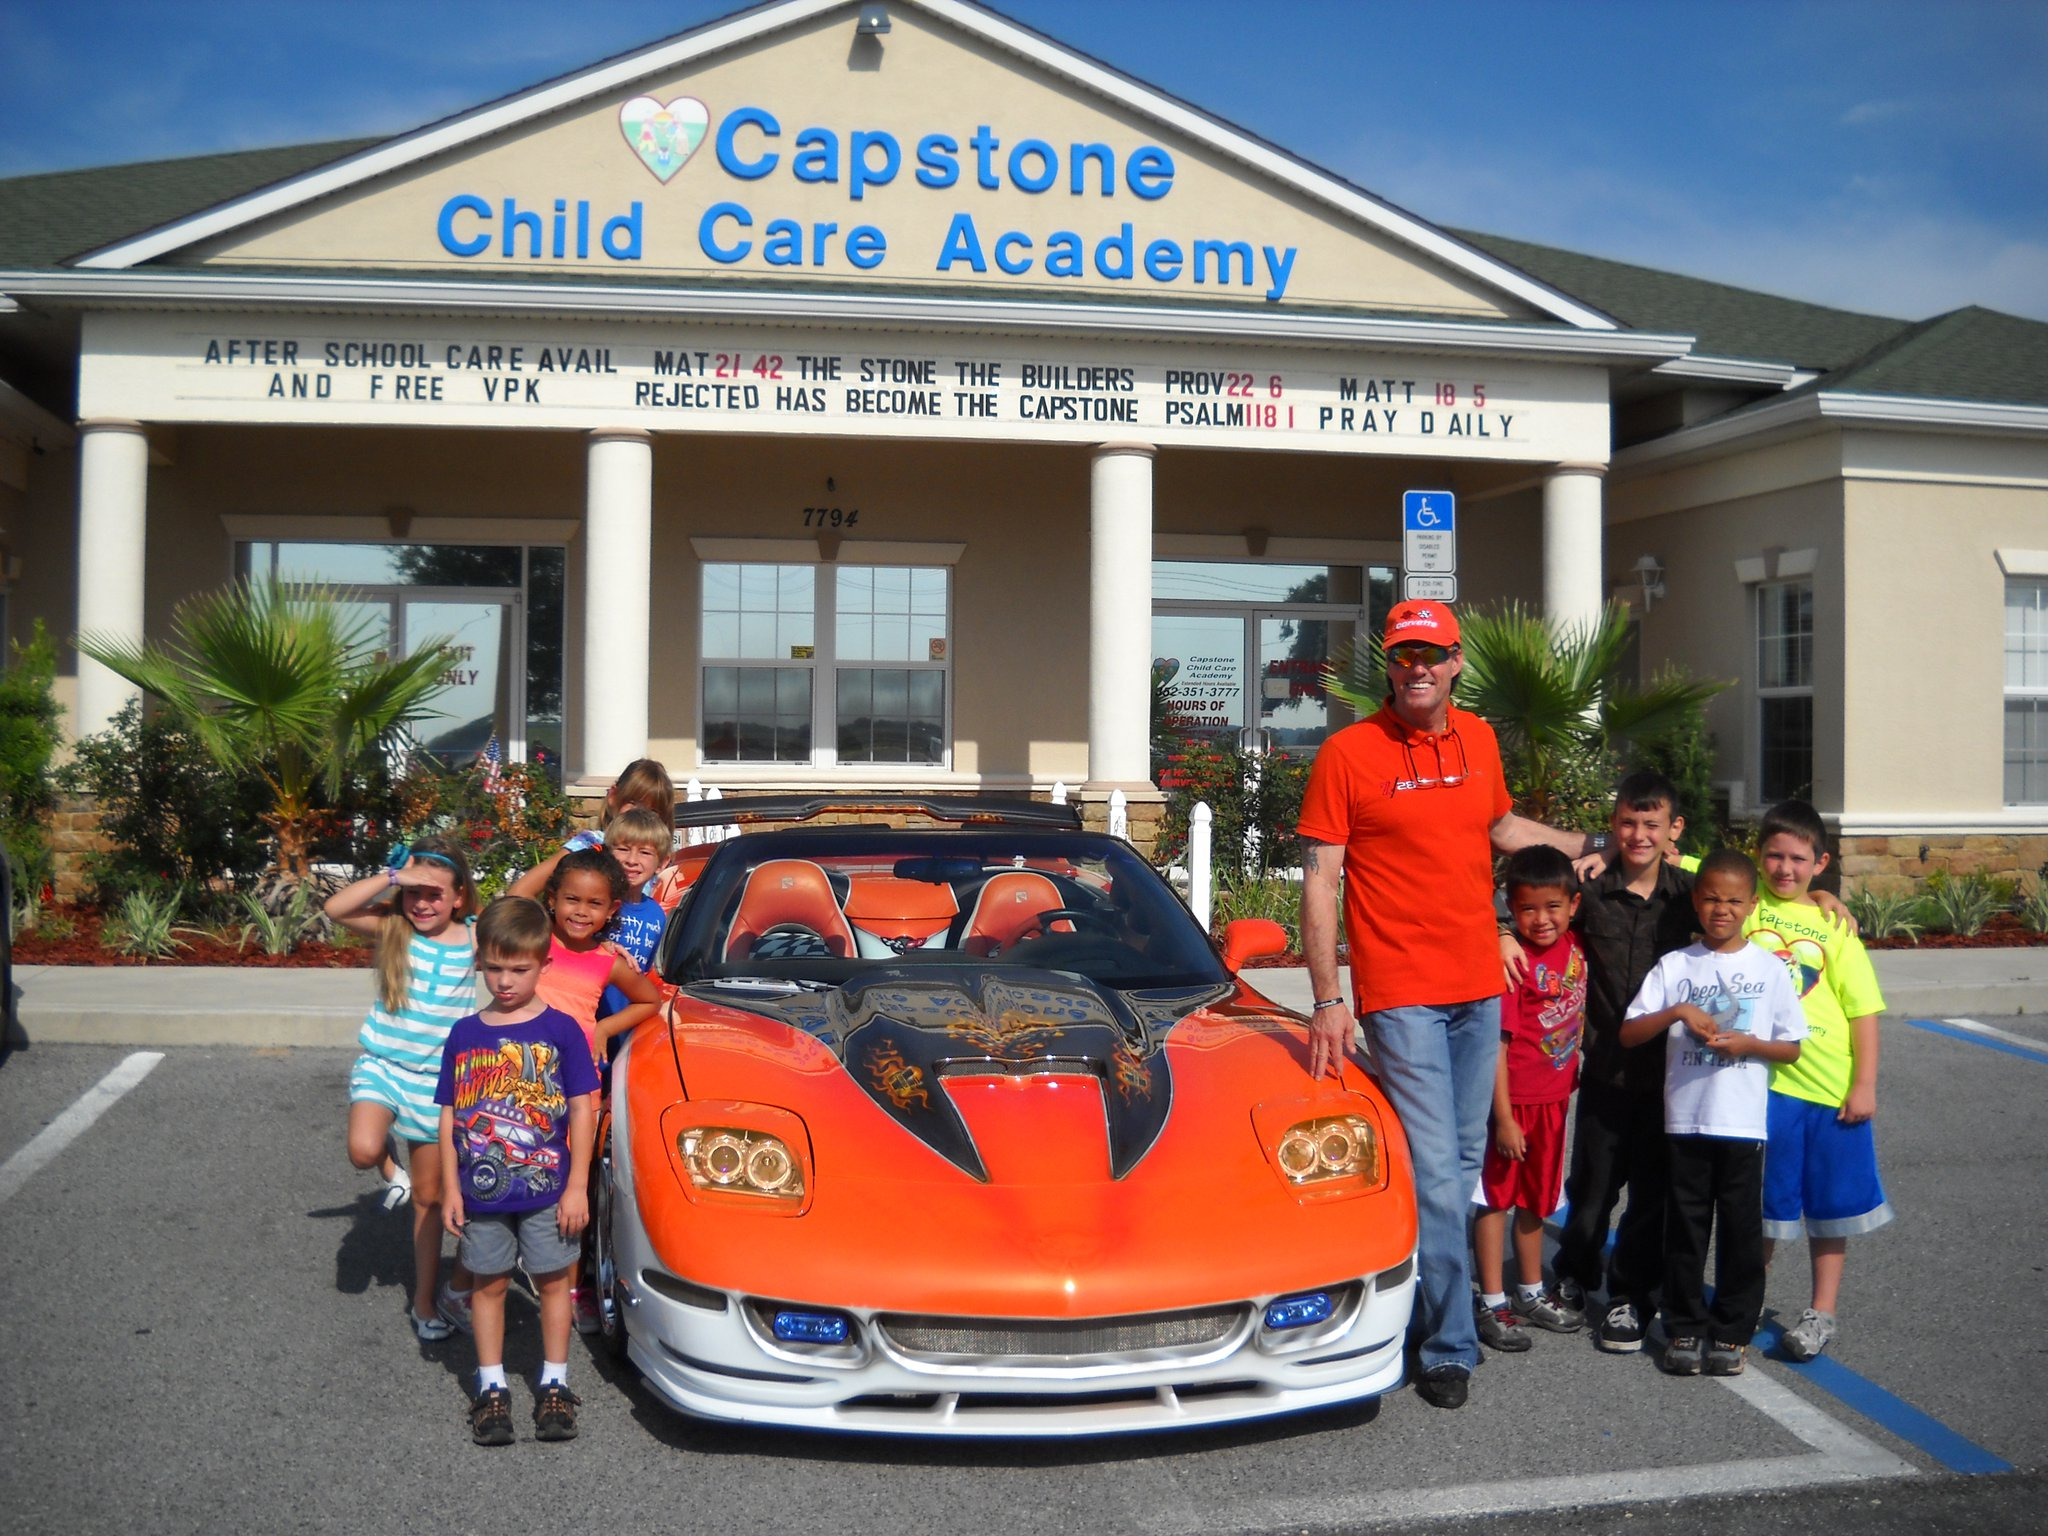 Drive Work Drive Your Corvette To Work On Friday July 1 National Corvette